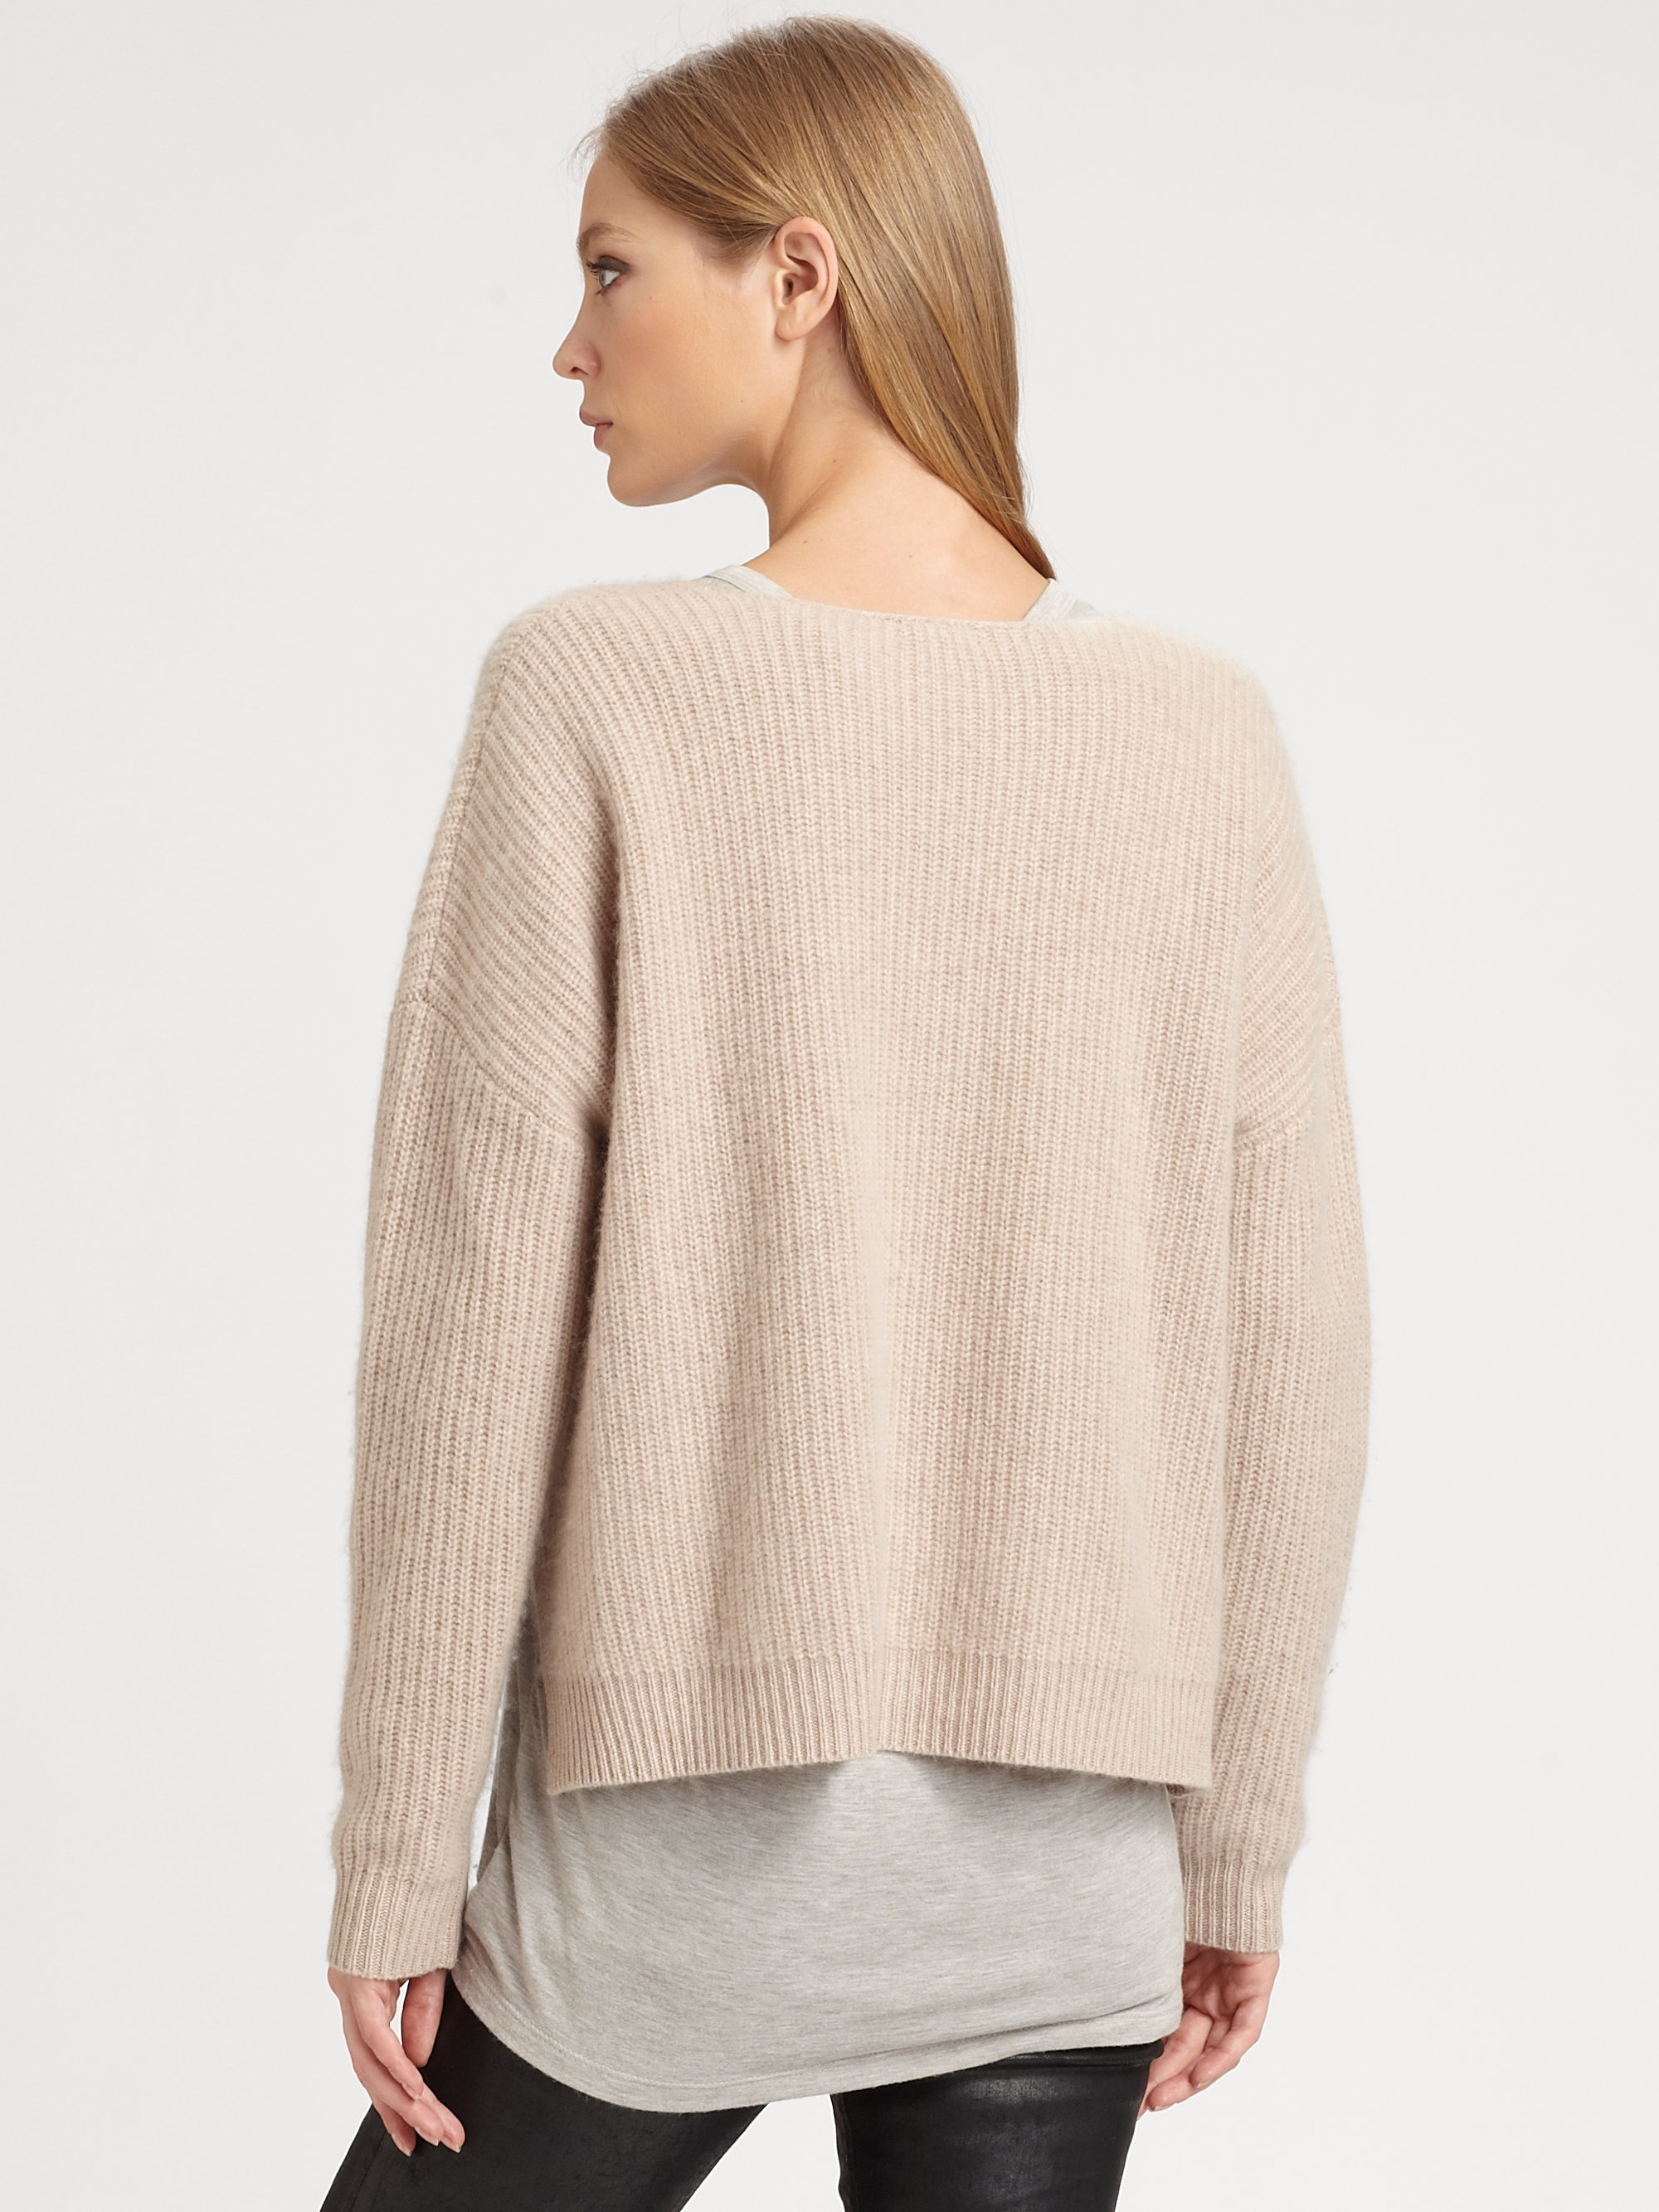 Demylee Alex Ribbed Cashmere Sweater in Natural   Lyst